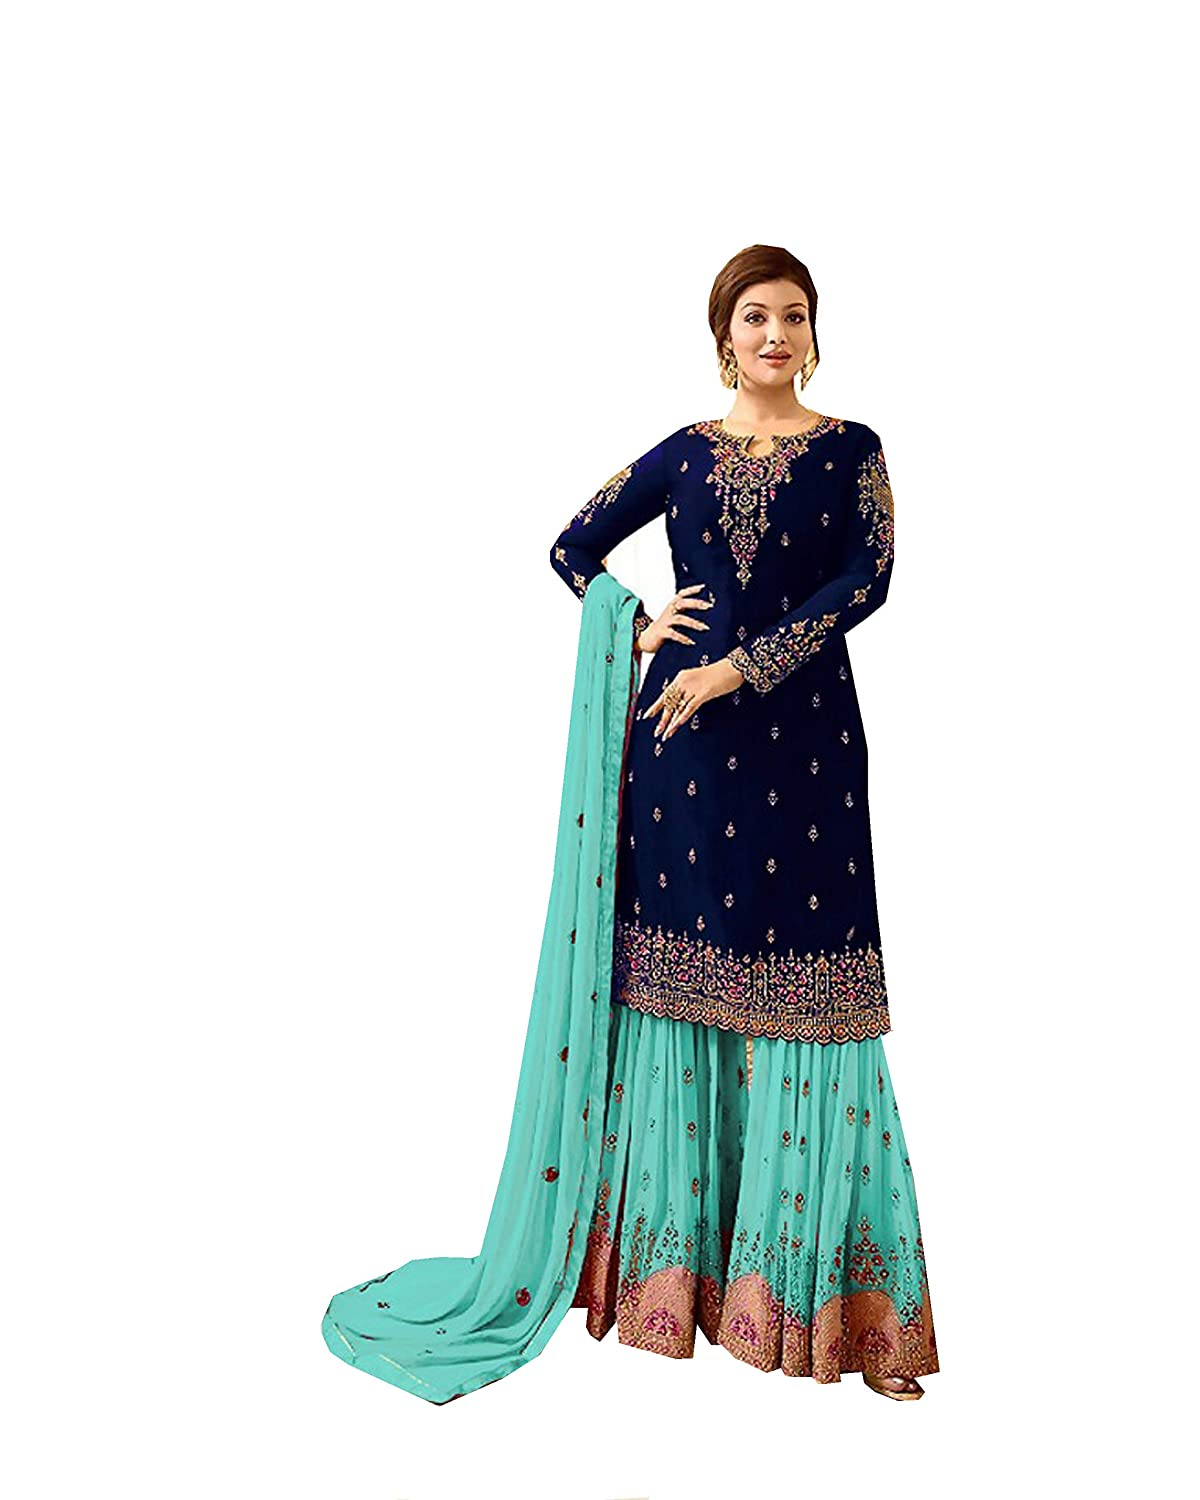 Delisa Indian/Pakistani Sharara Style Salwar Suit for Women Fiona